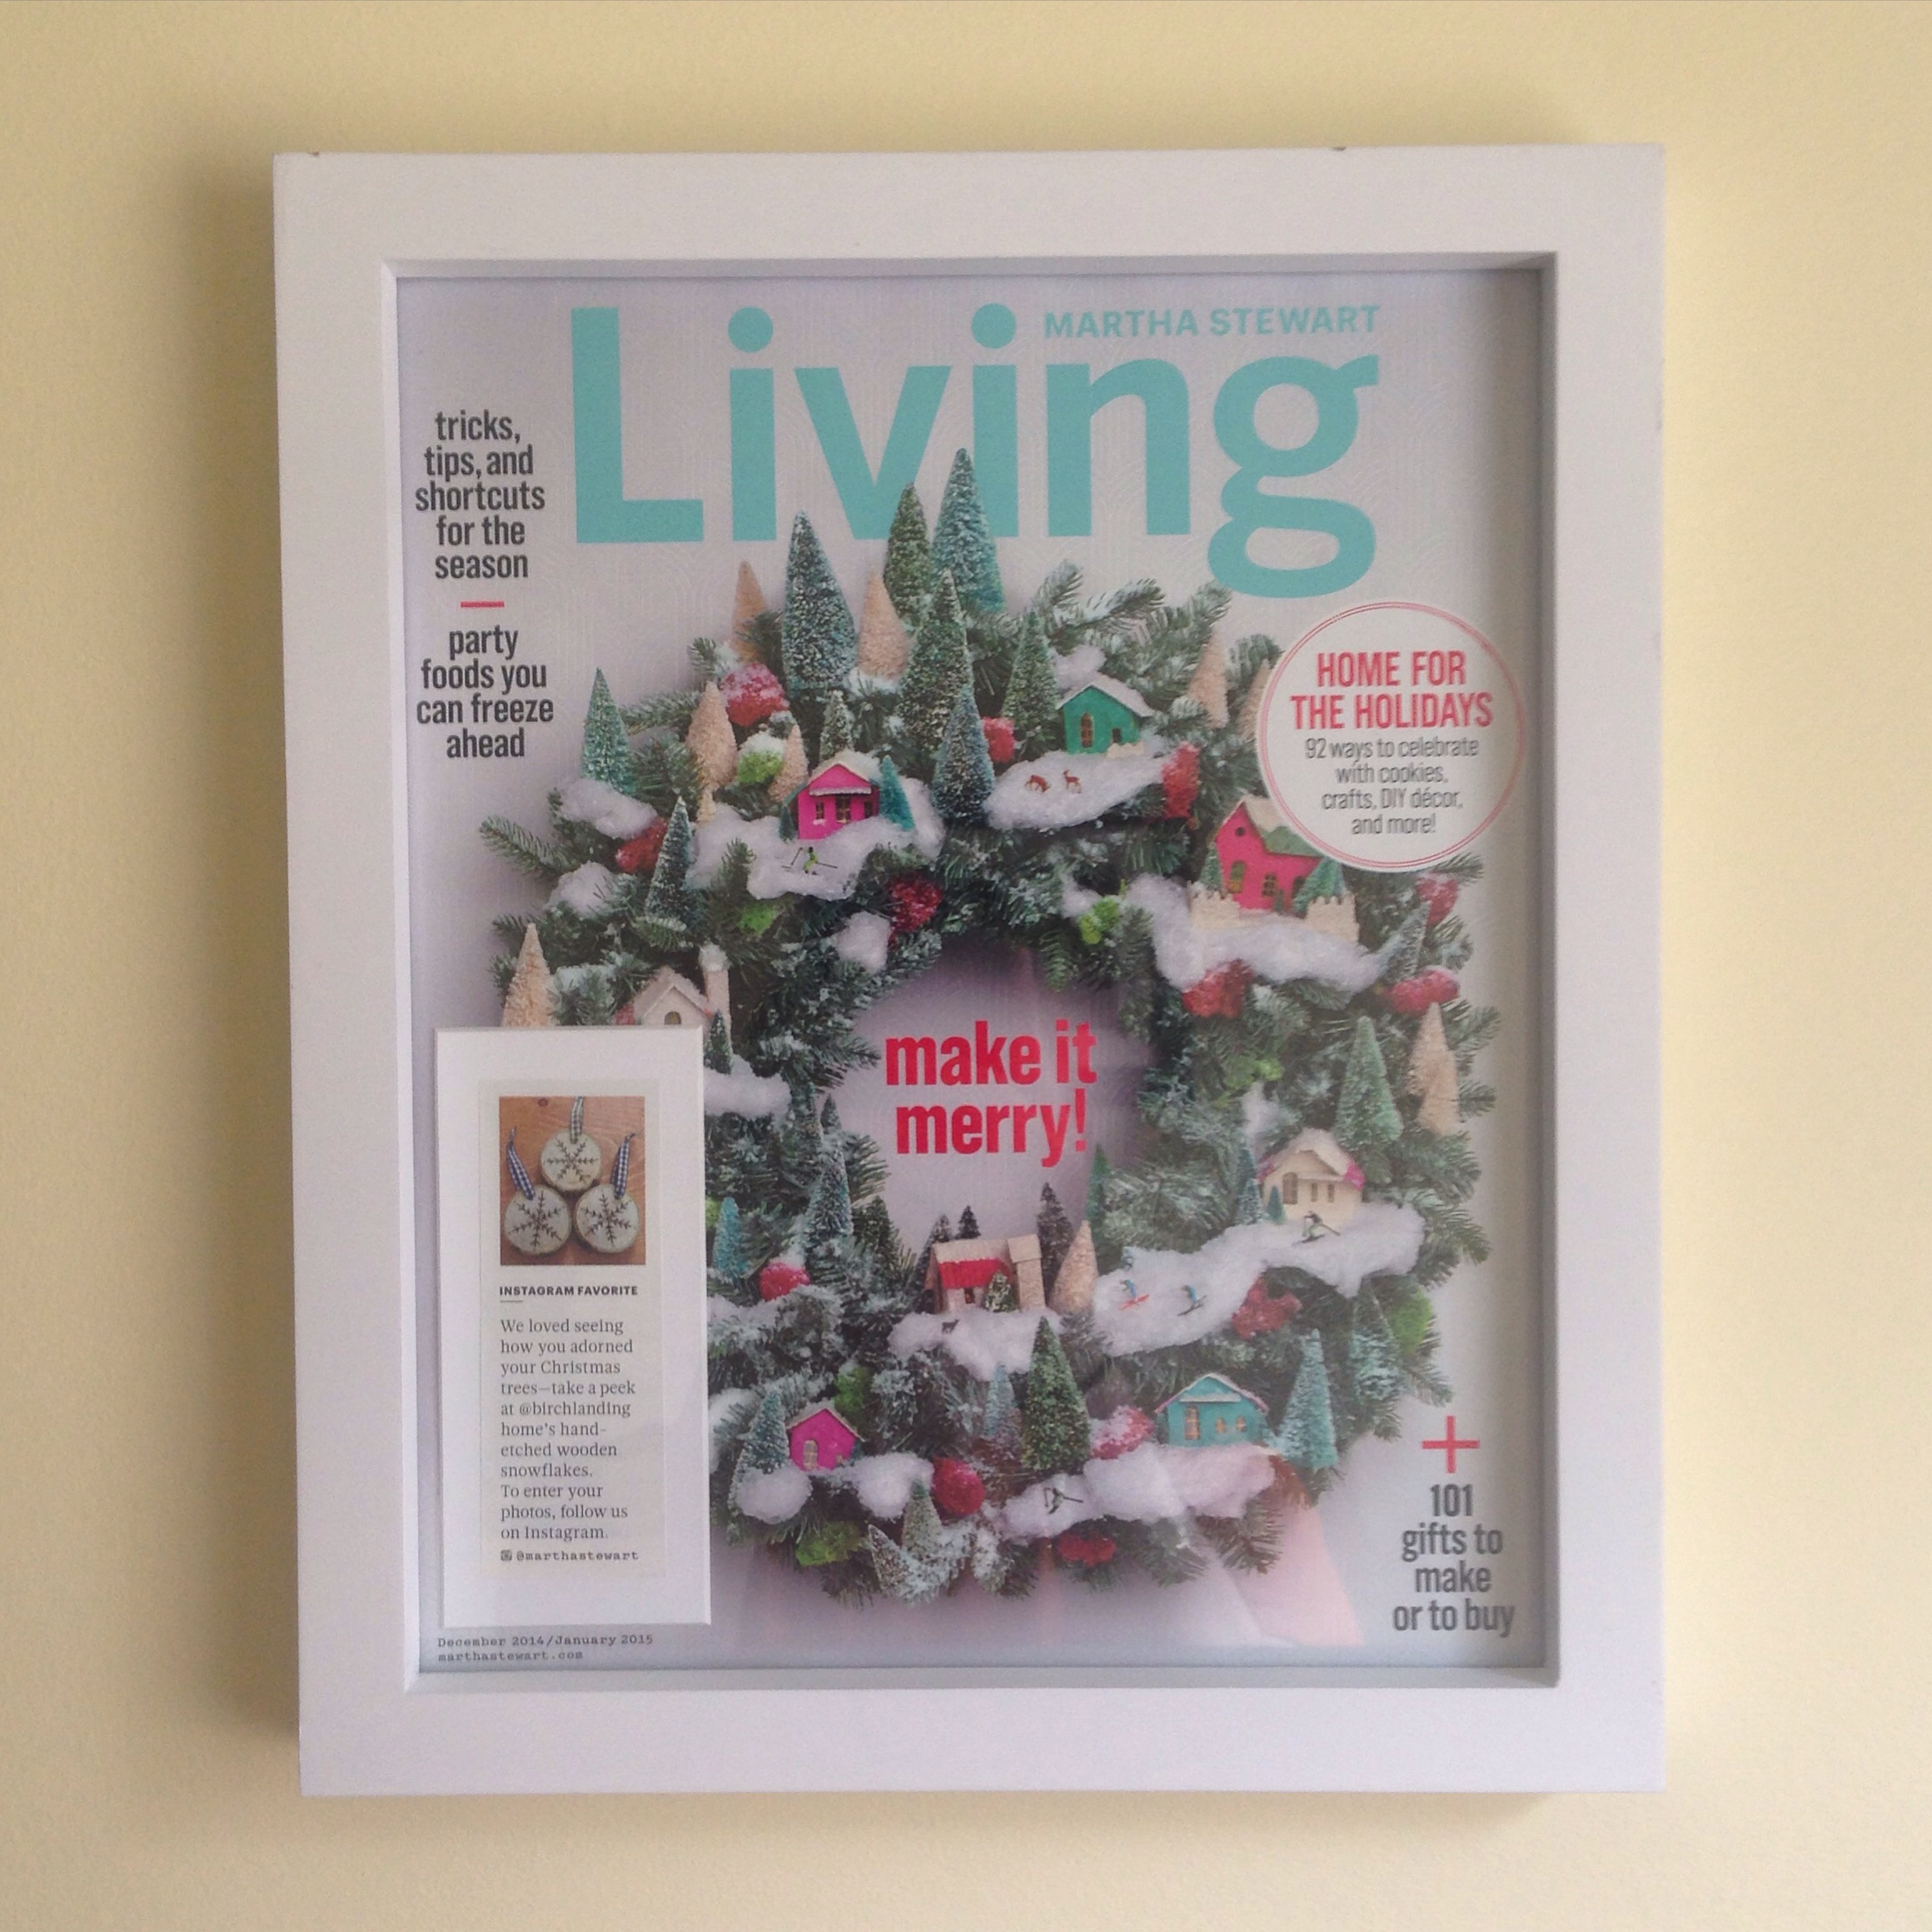 I framed the issue of Martha Stewart Living Magazine my ornaments were featured in.  Such an honor!